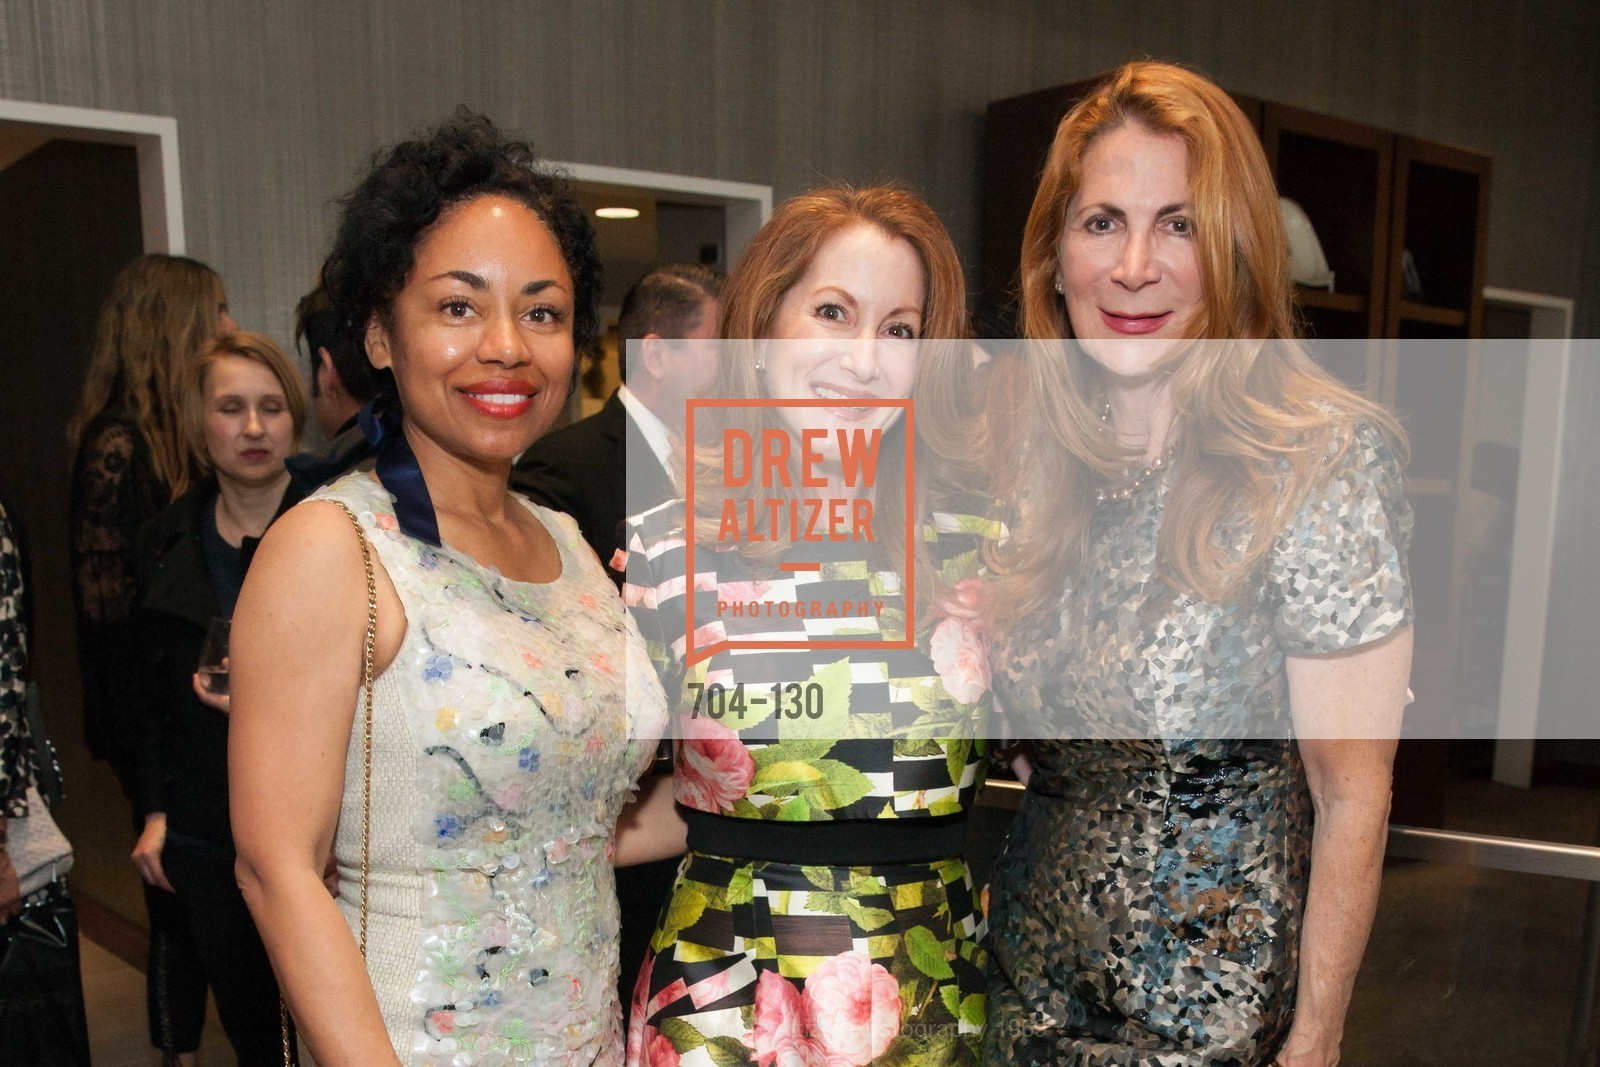 Paula Schultz, Ave Seltsam, Patricia Ferrin Loucks, Electric Fashion Book Signing with Christine Suppes & Ken Downing, Neiman Marcus, Rotunda, May 26th, 2015,Drew Altizer, Drew Altizer Photography, full-service event agency, private events, San Francisco photographer, photographer California